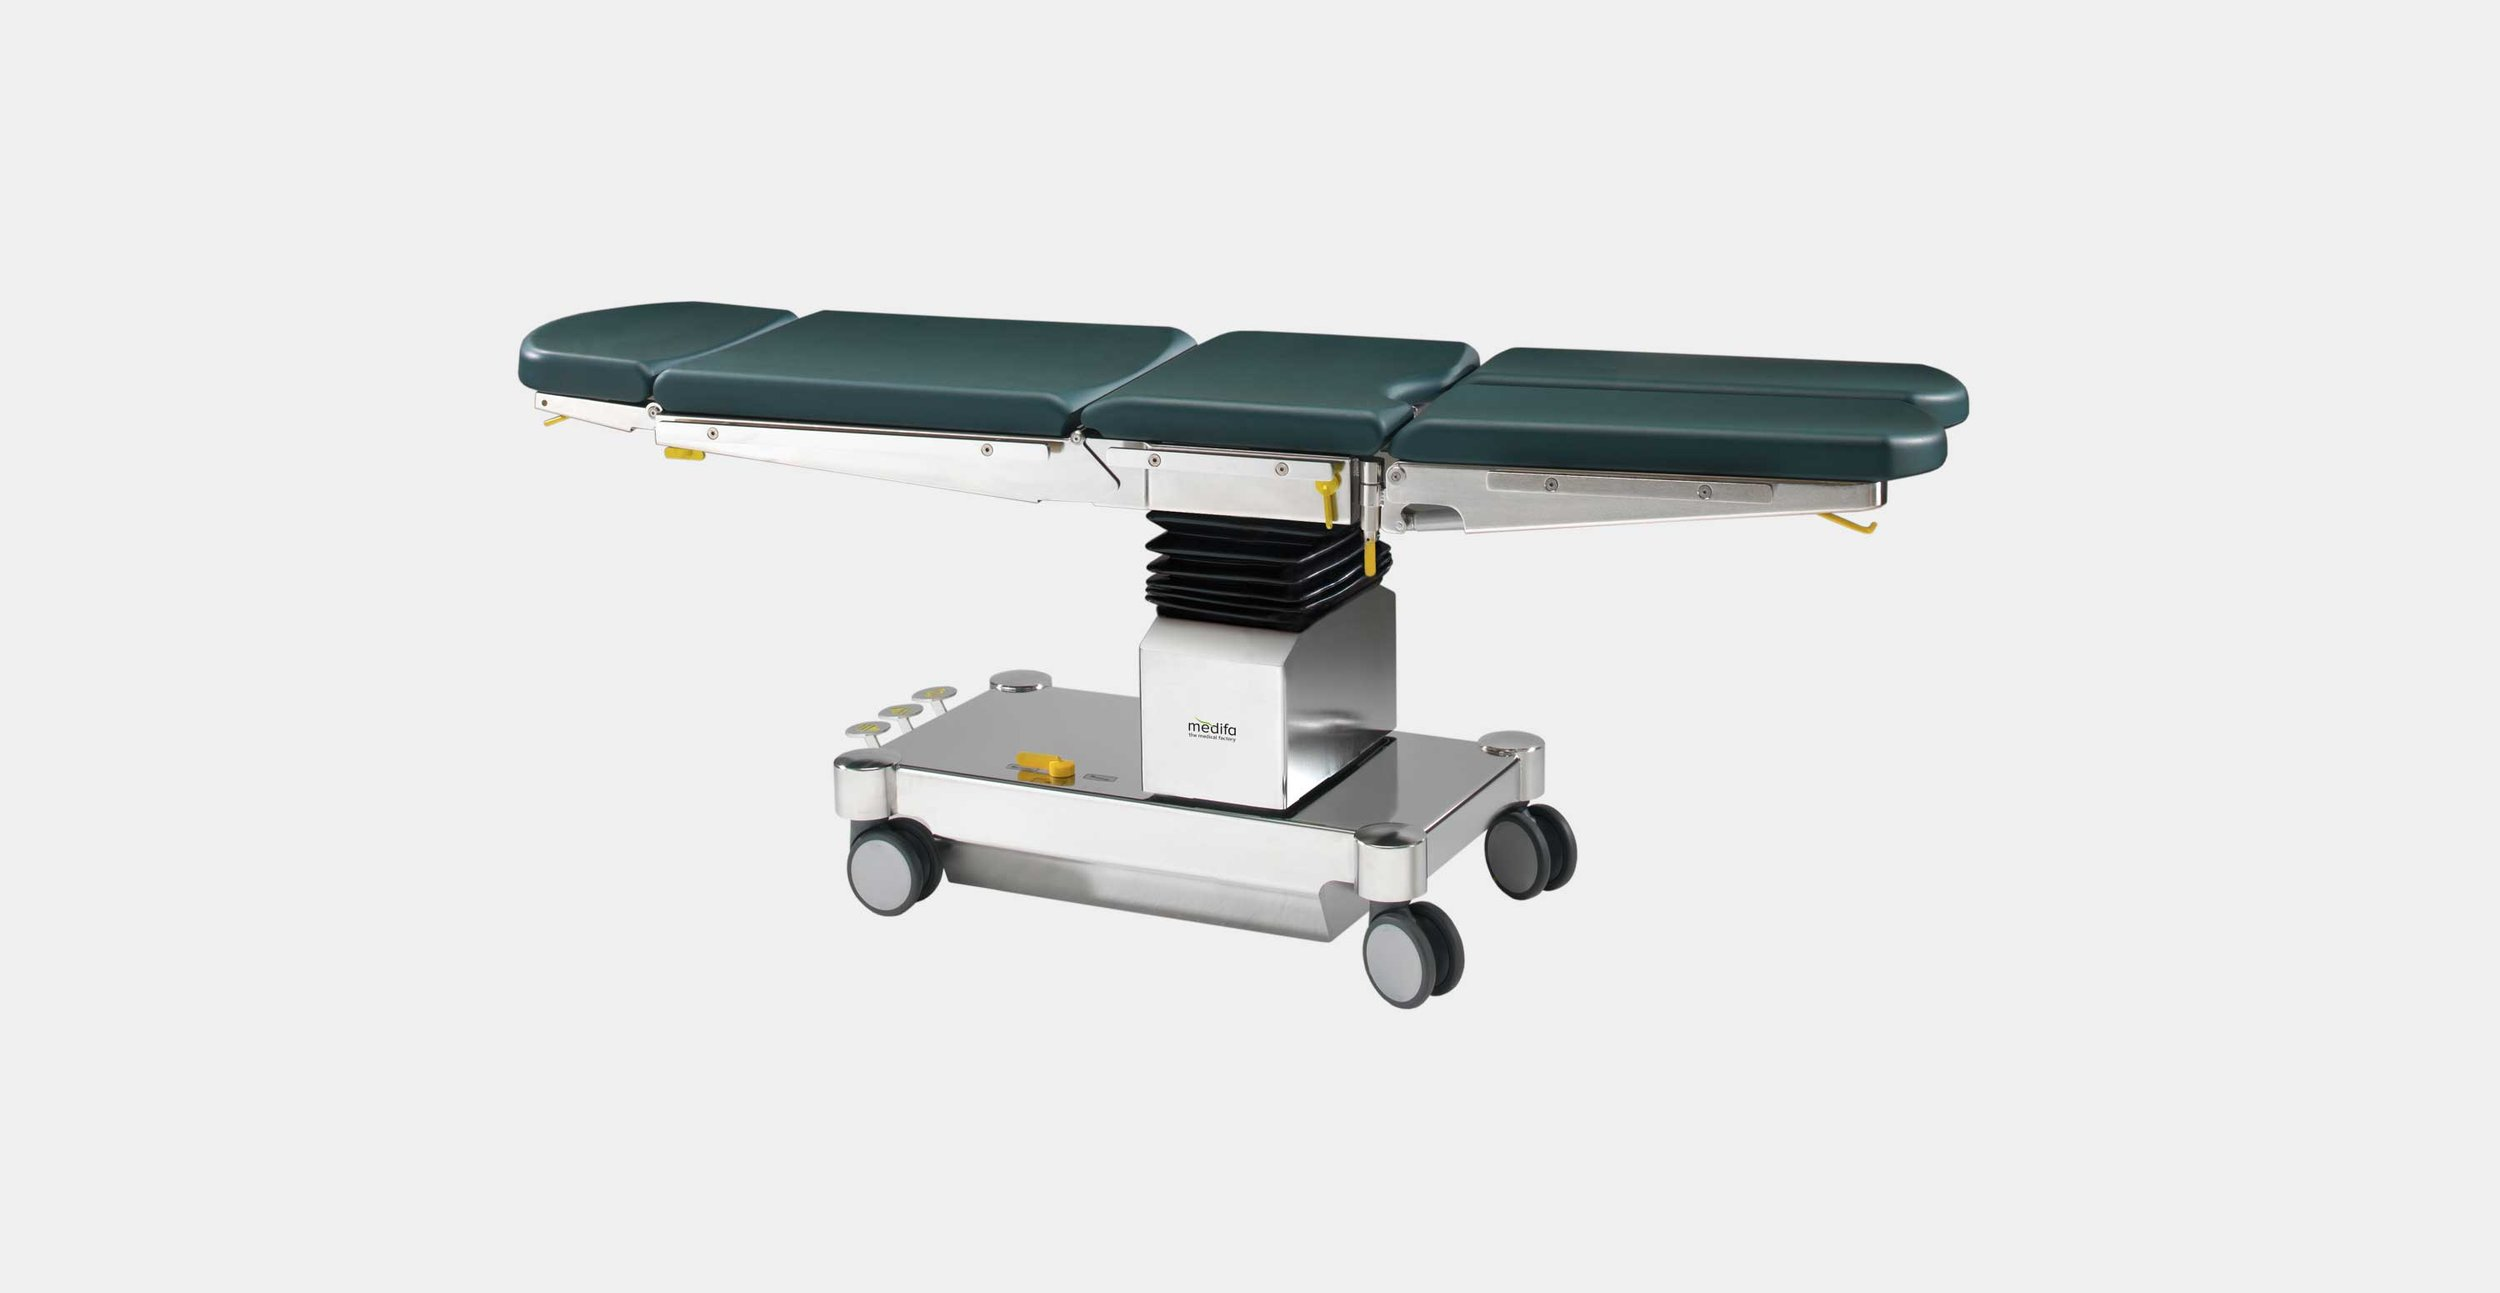 """Medifa 5000 serie - The operating tables of series medifa 5000 are characterized by a very attractive price-performance ratio and the widest diversity of variants on the world market. The three shown variants are only a selection. Please have a look at the brochure """"medifa 5000"""" for further variants.click here for the online brochure"""